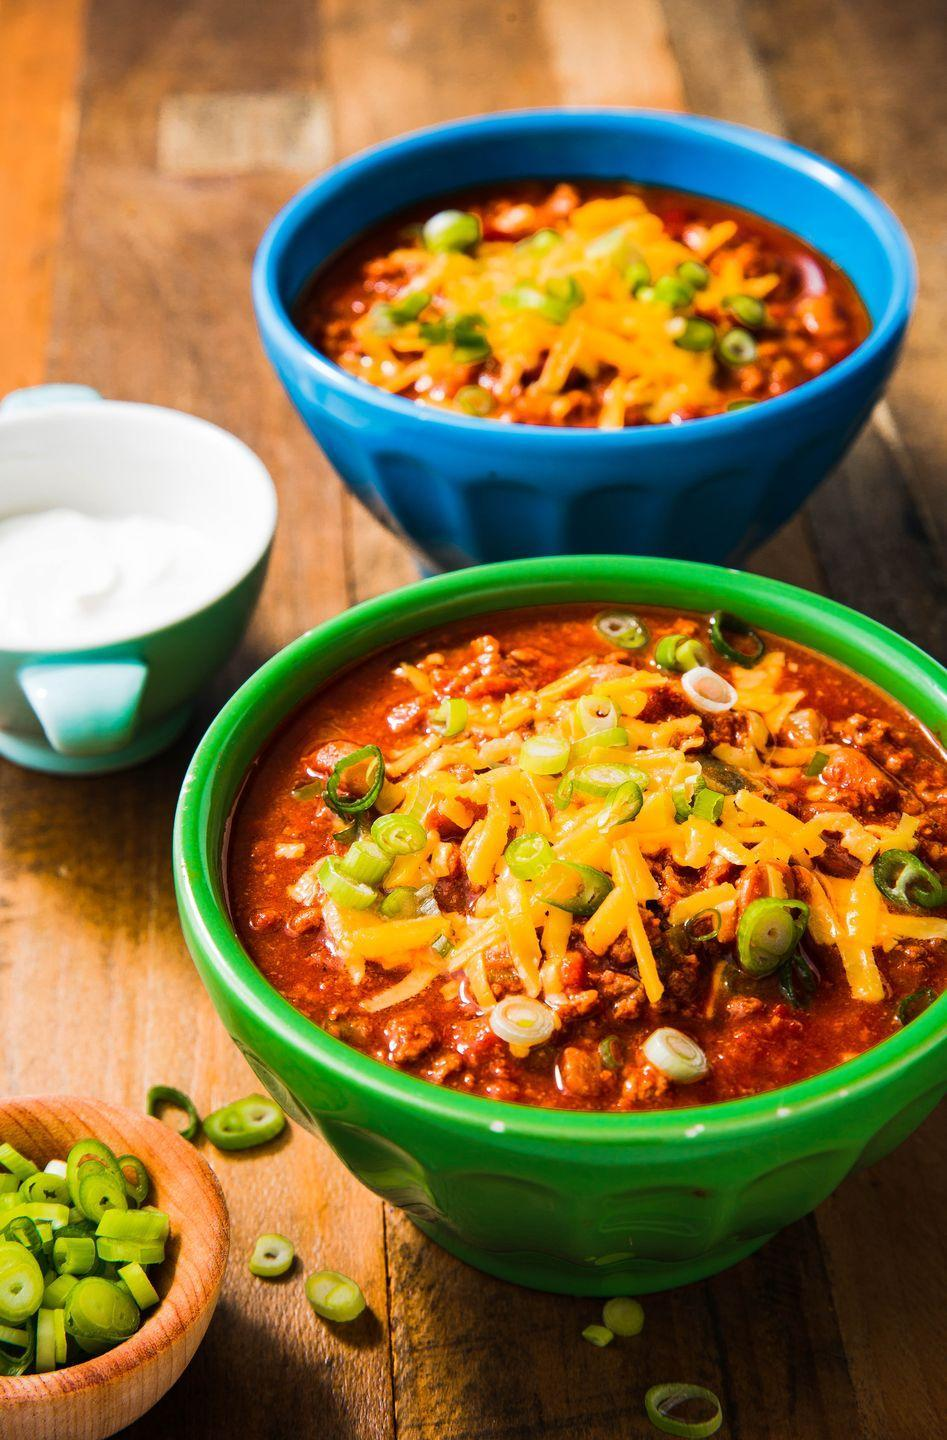 "<p>This is the perfect chili recipe.</p><p>Get the recipe from <a href=""https://www.delish.com/cooking/recipe-ideas/a23491158/wendys-copycat-chili-recipe/"" rel=""nofollow noopener"" target=""_blank"" data-ylk=""slk:Delish"" class=""link rapid-noclick-resp"">Delish</a>. </p>"